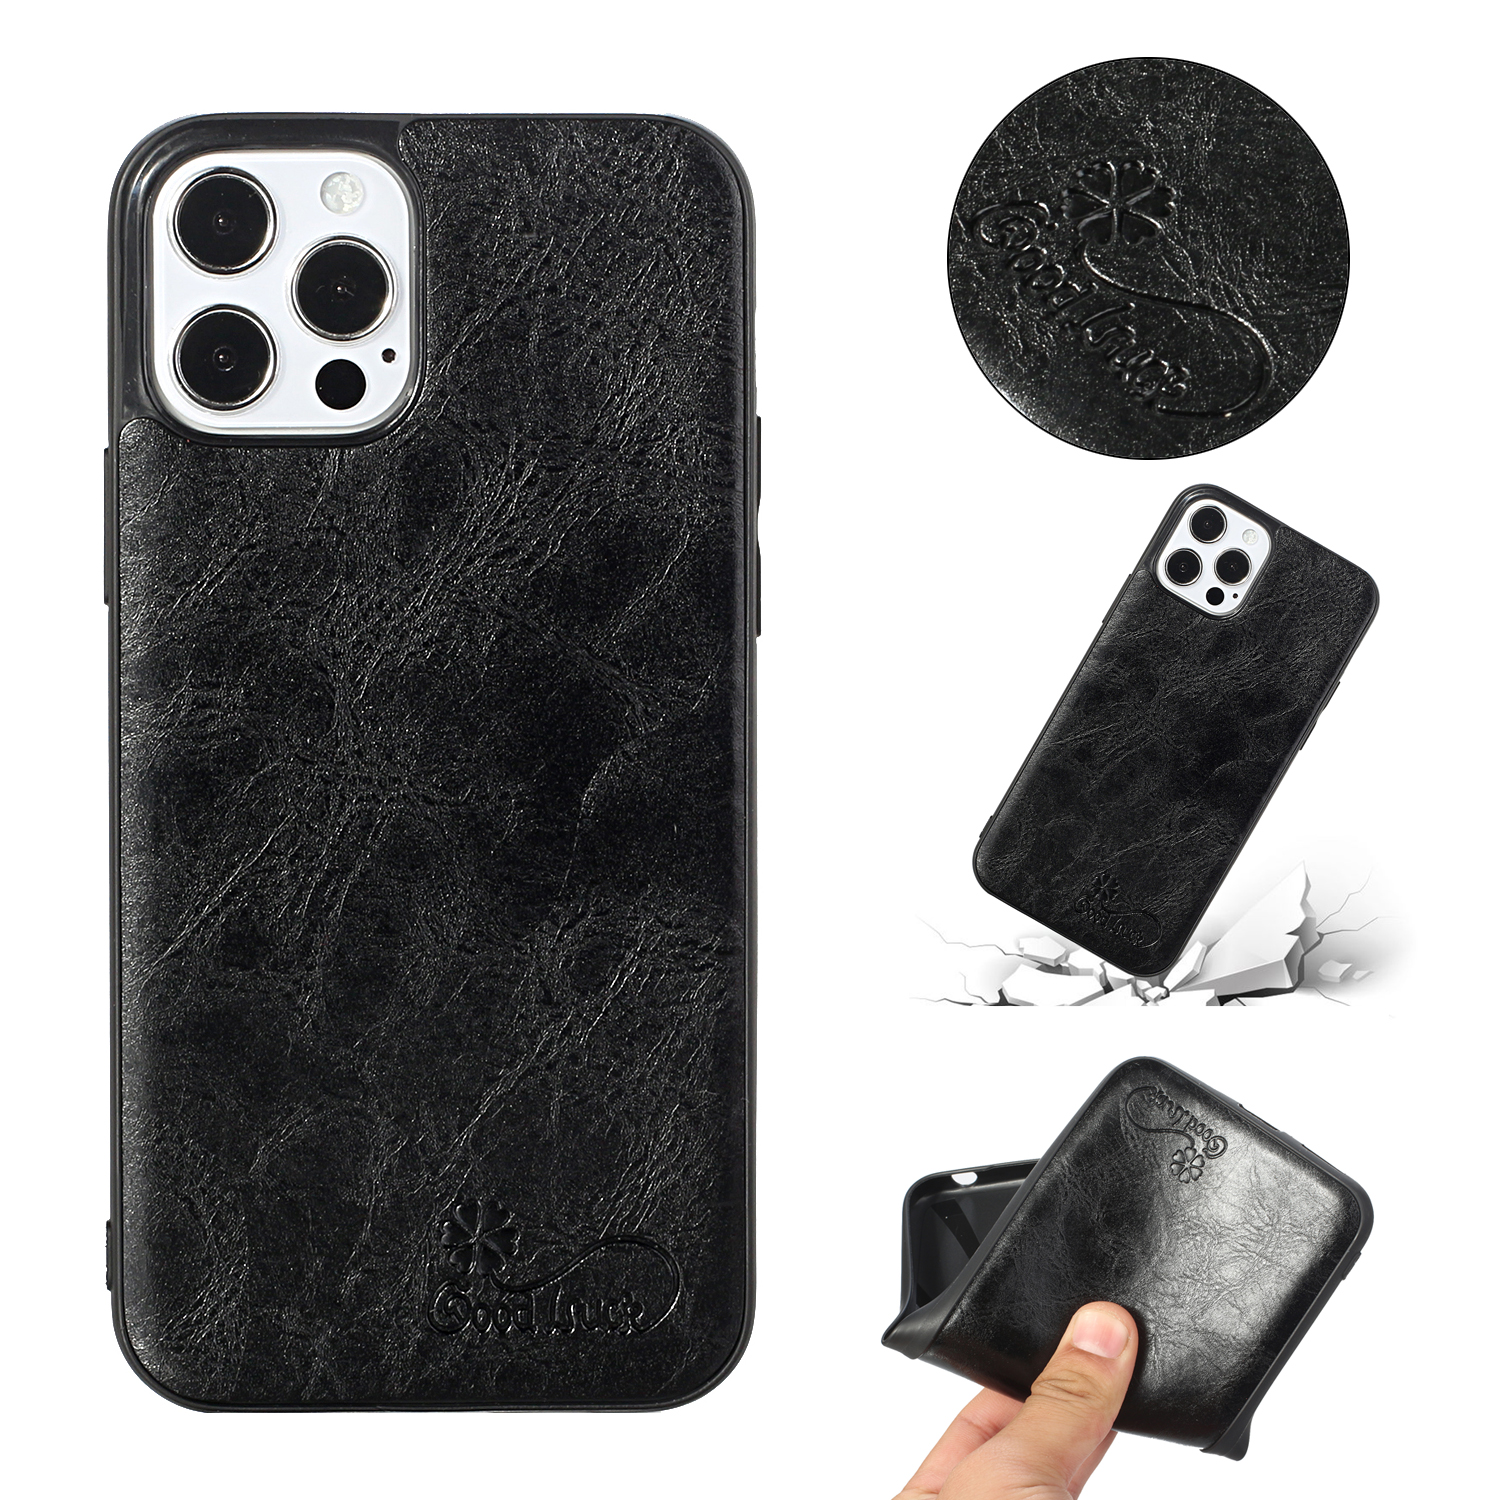 For Iphone 11 Pro Max Mobile Phone Cover Pu Waxed Leather Protective Case black